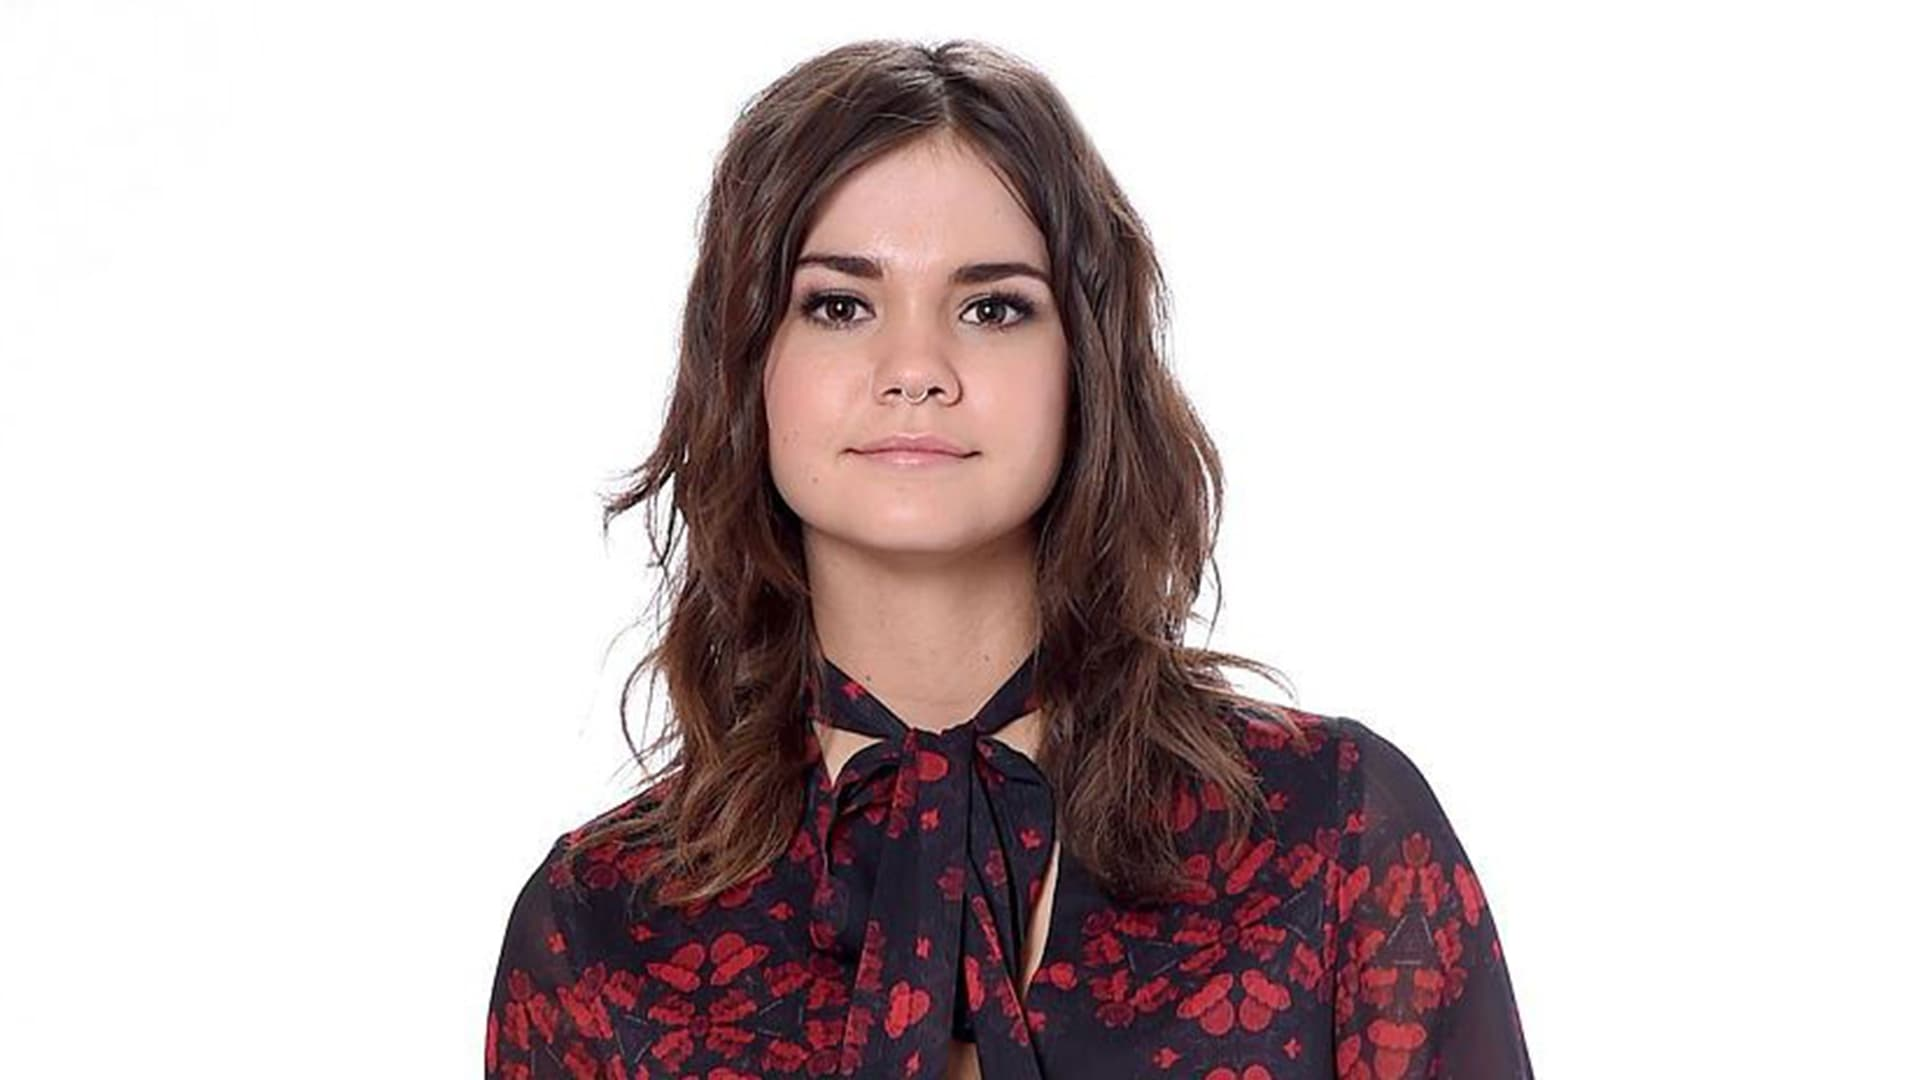 Animals In Suits Wallpaper Maia Mitchell Wallpapers Hd High Quality Resolution Download